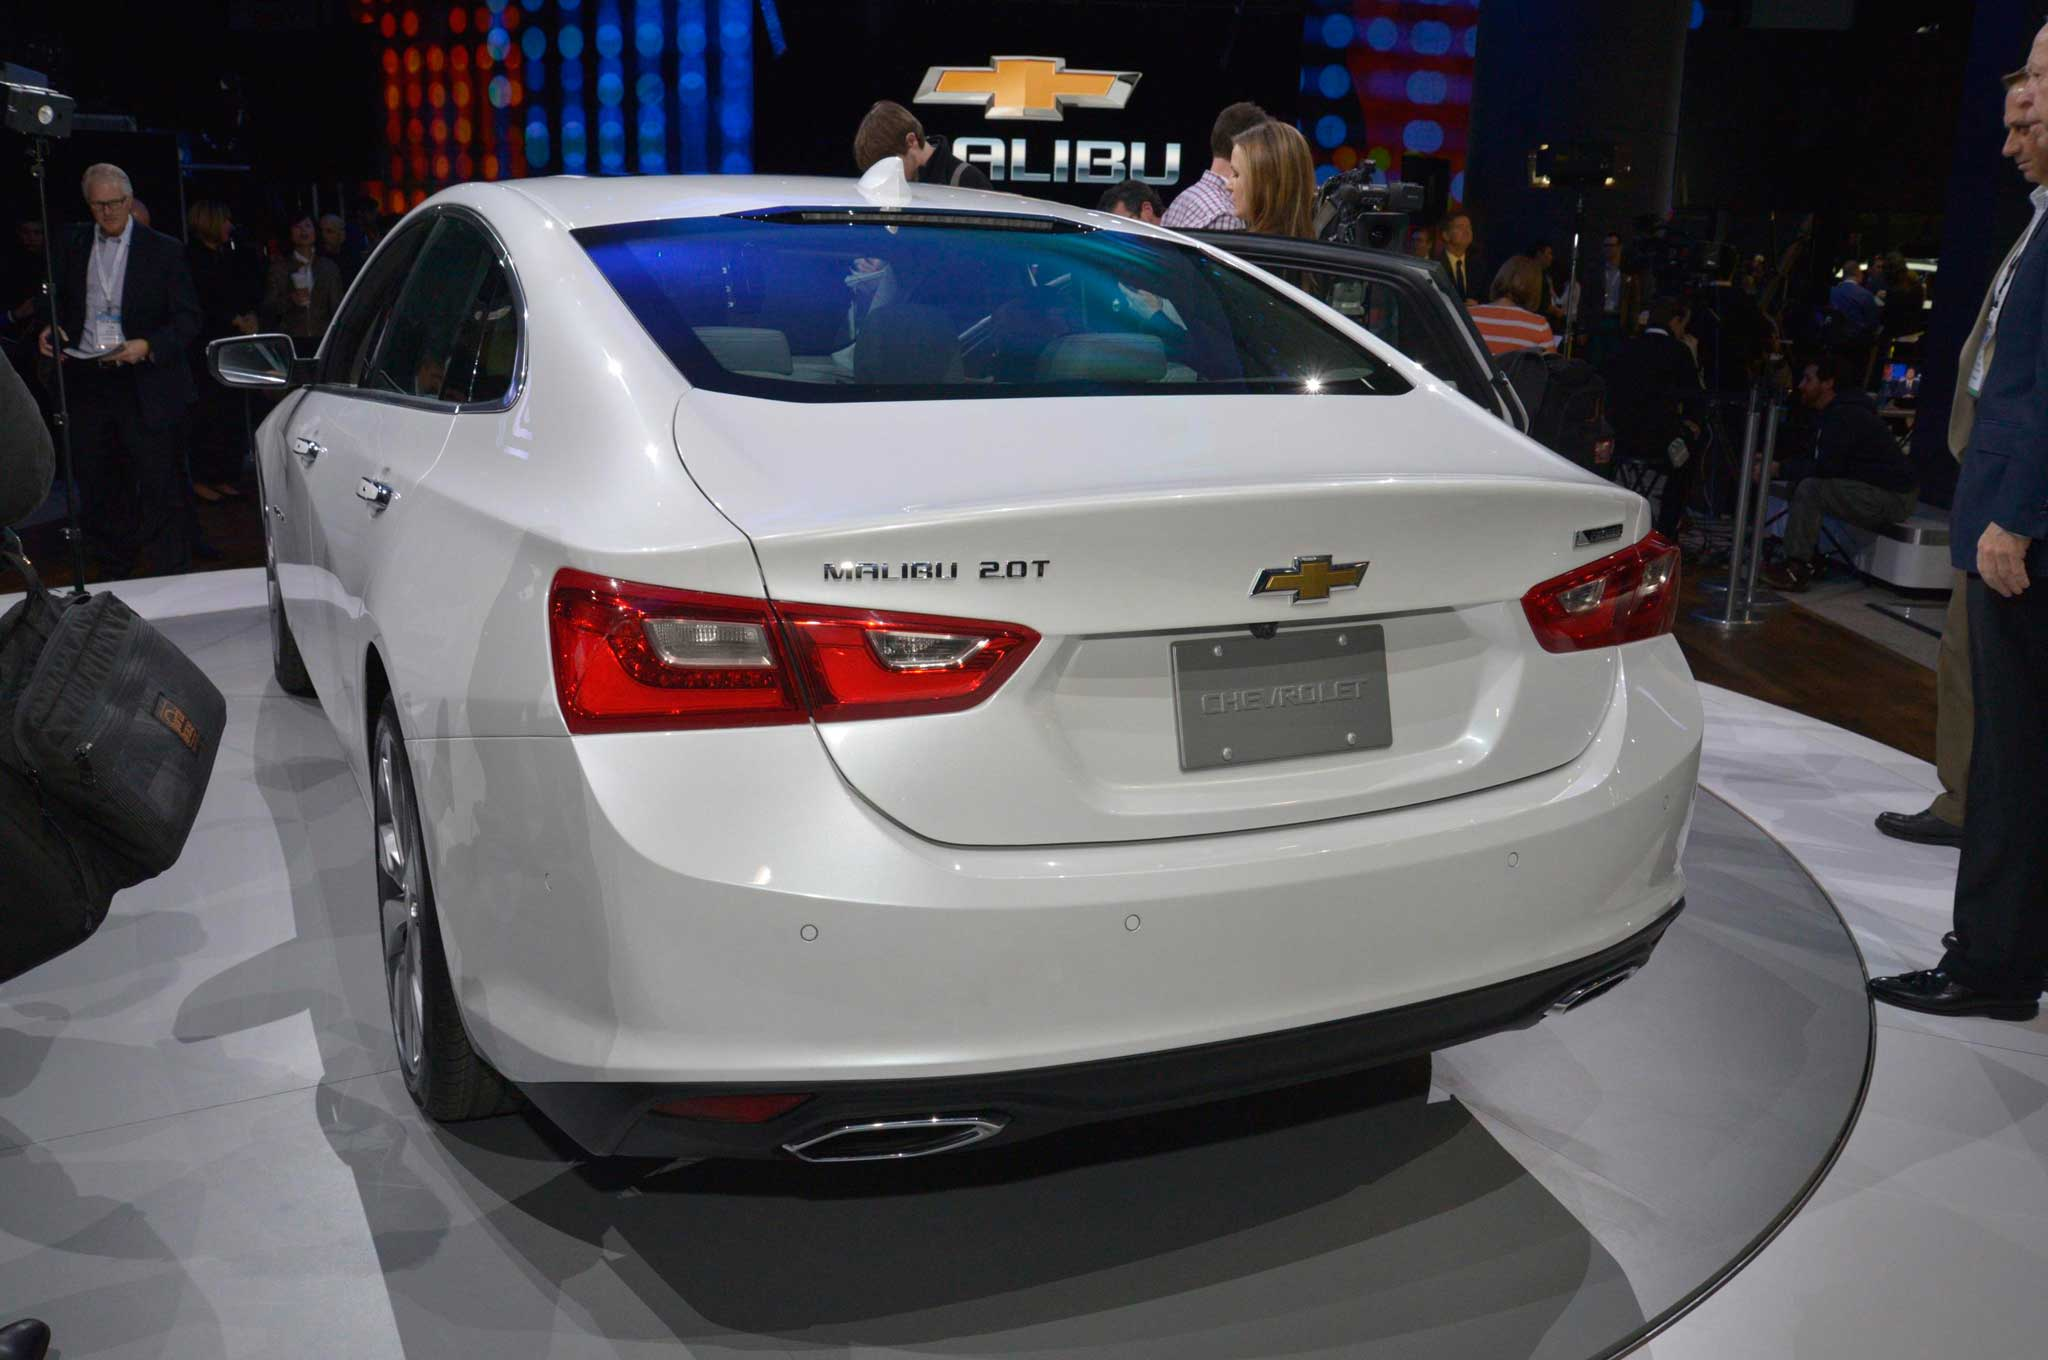 2016 Chevrolet Malibu Review - Dippin' in the Boo - Lowrider